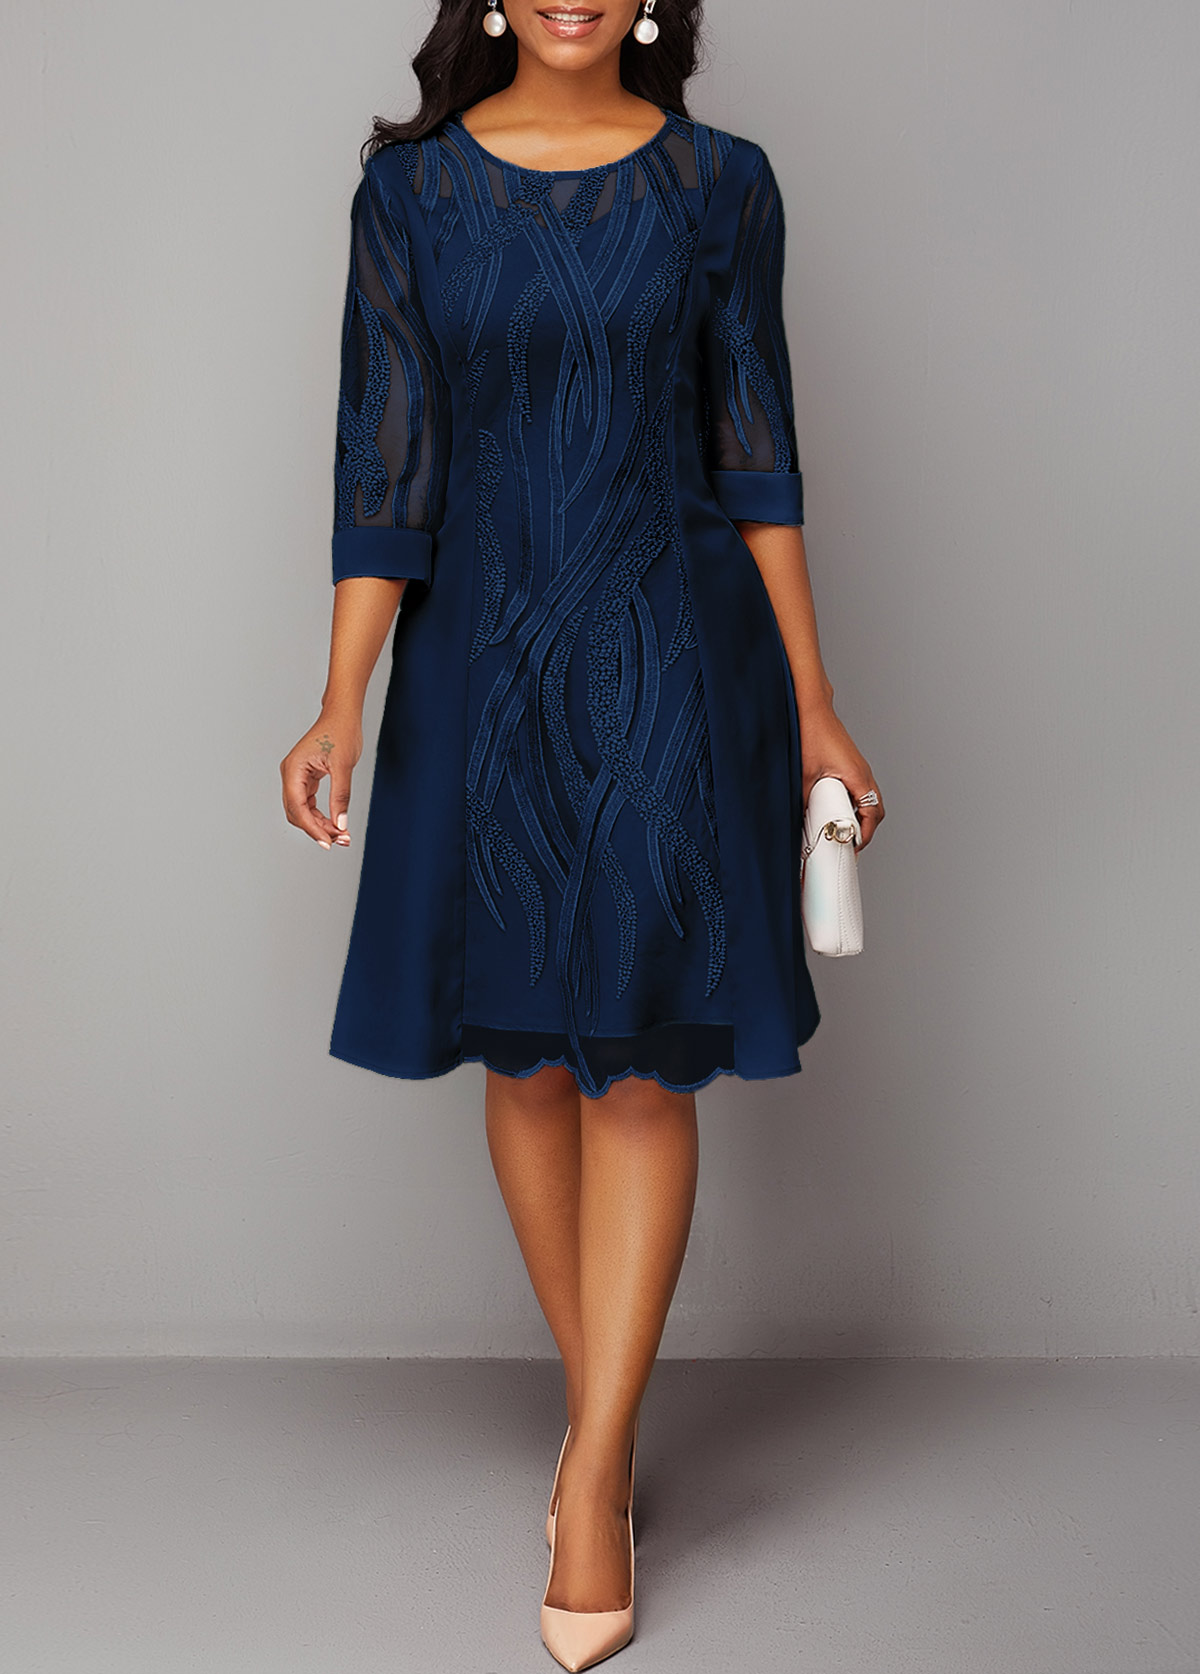 Three Quarter Sleeve Navy Blue Round Neck Lace Dress